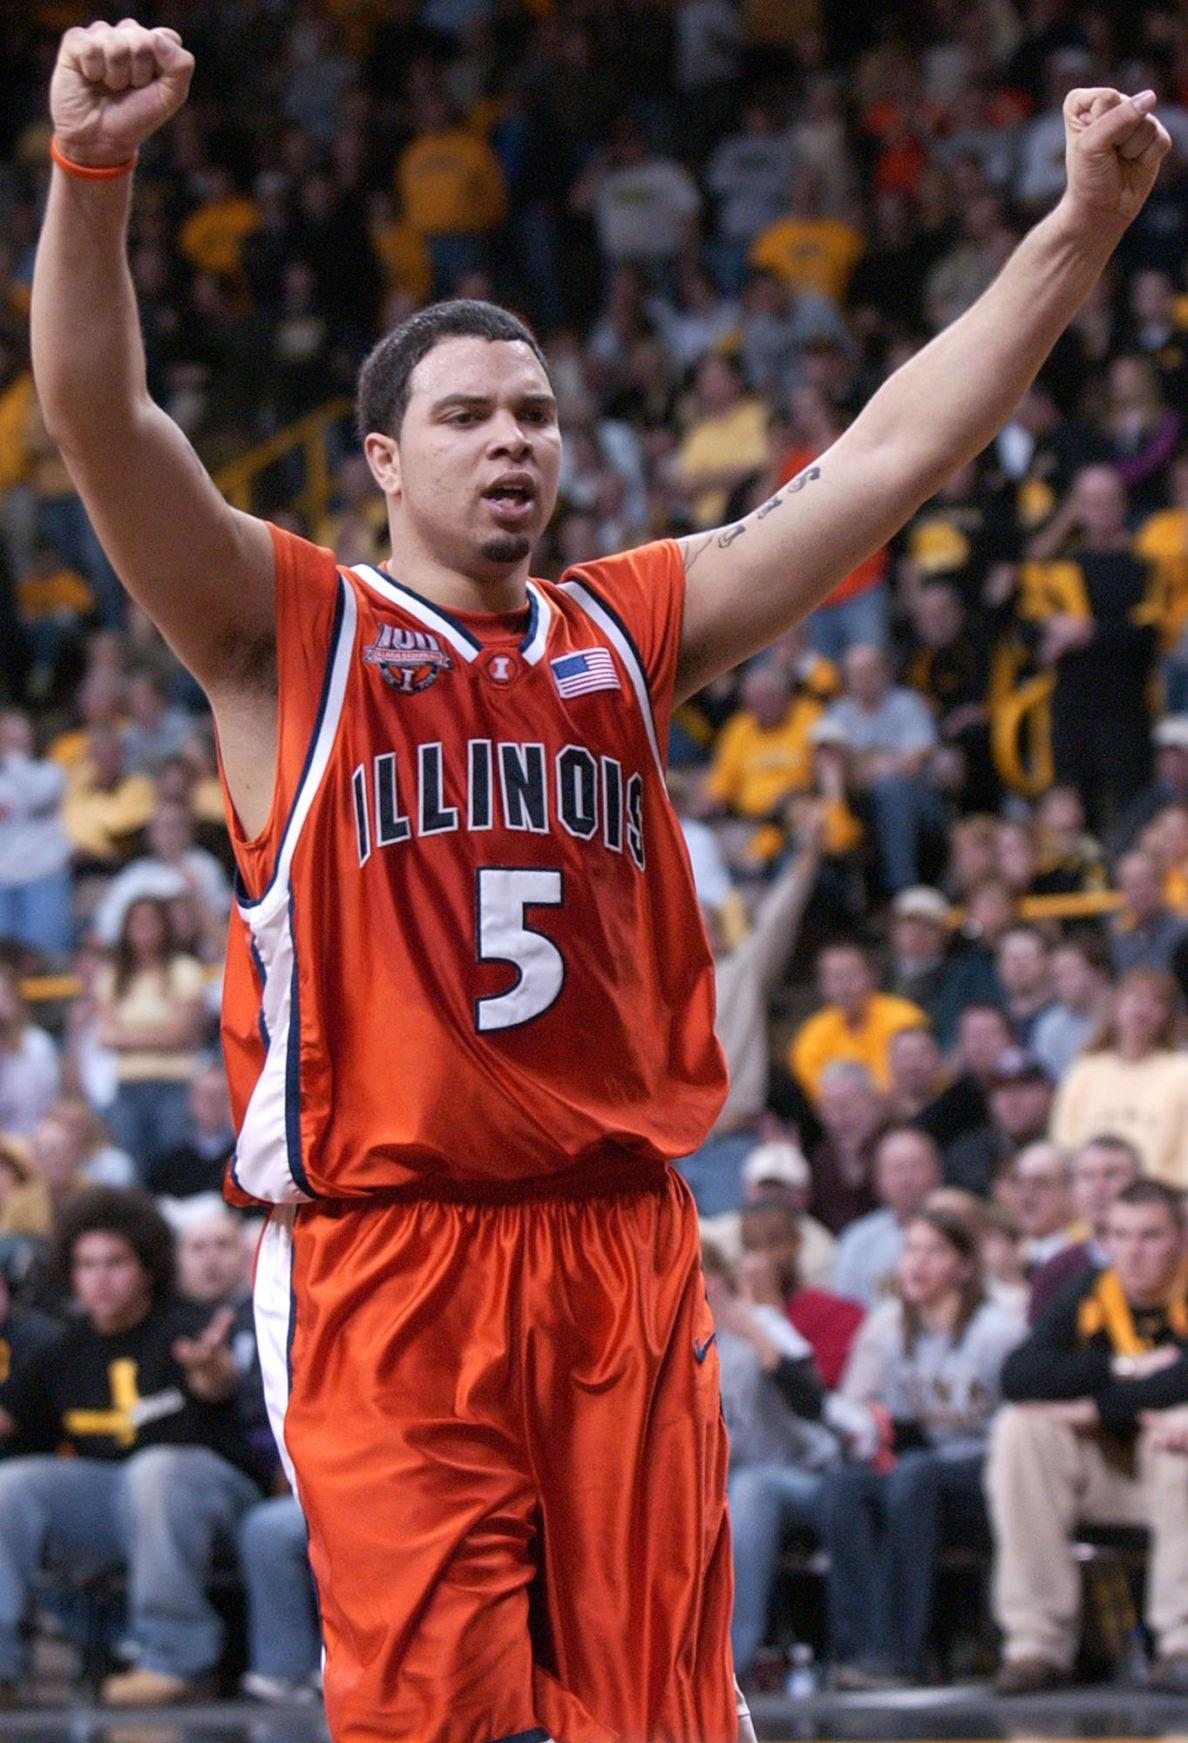 Illinois' Deron Williams raises his arms to celebrate points scored by teammate Dee Brown during the second half of the game at the University of Iowa on Feb. 11, 2005.